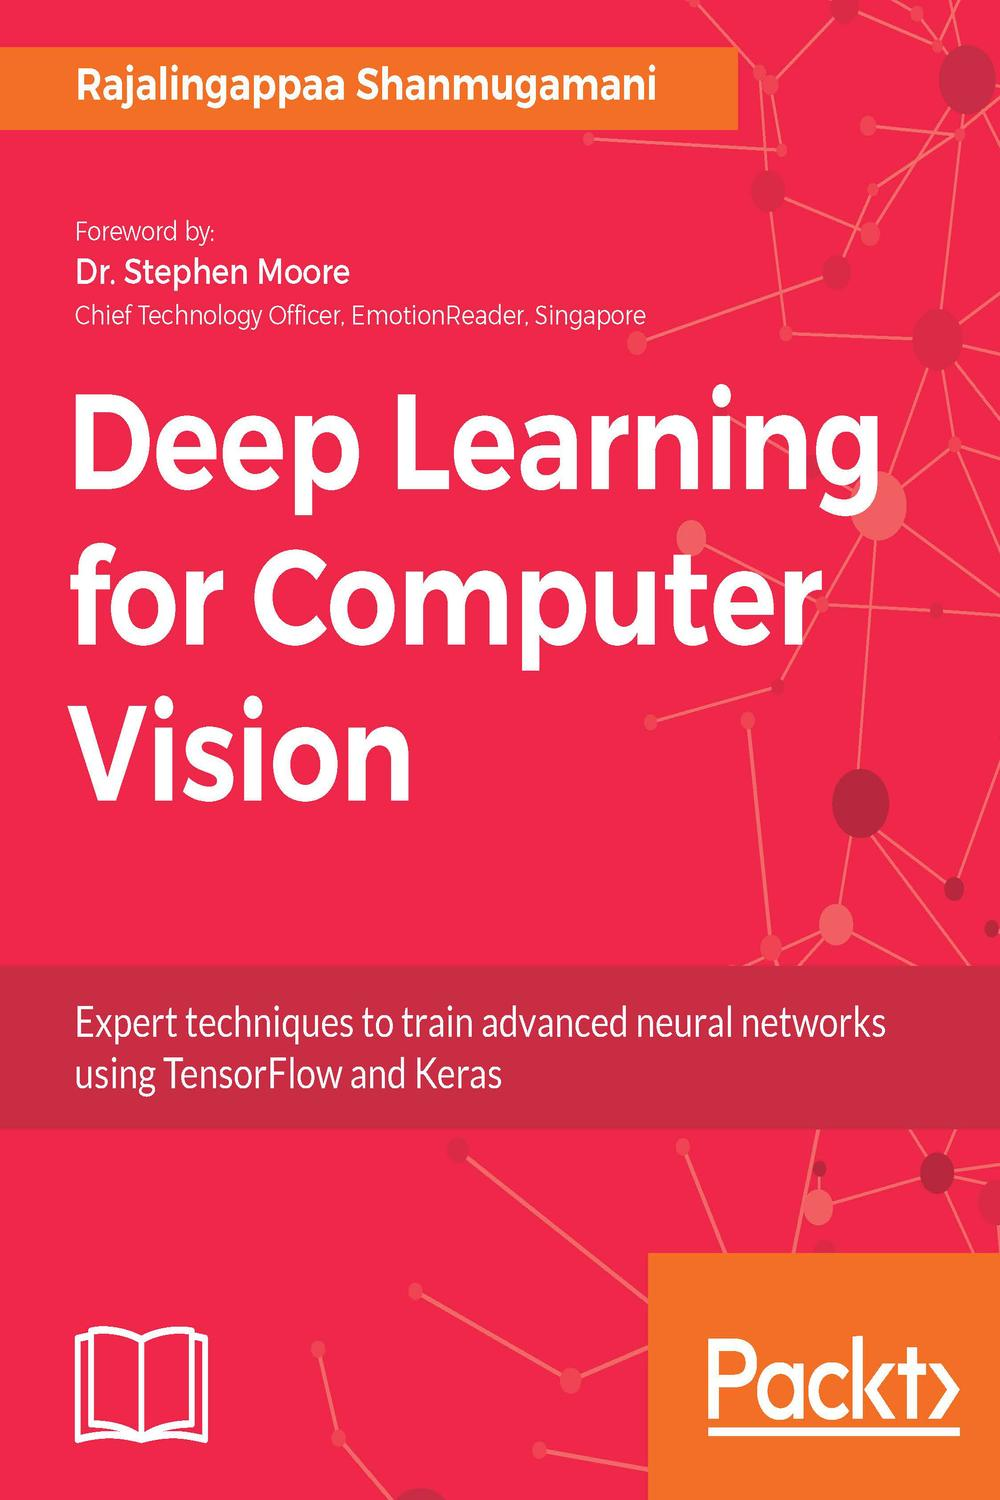 Deep Learning for Computer Vision by rajalingappaa